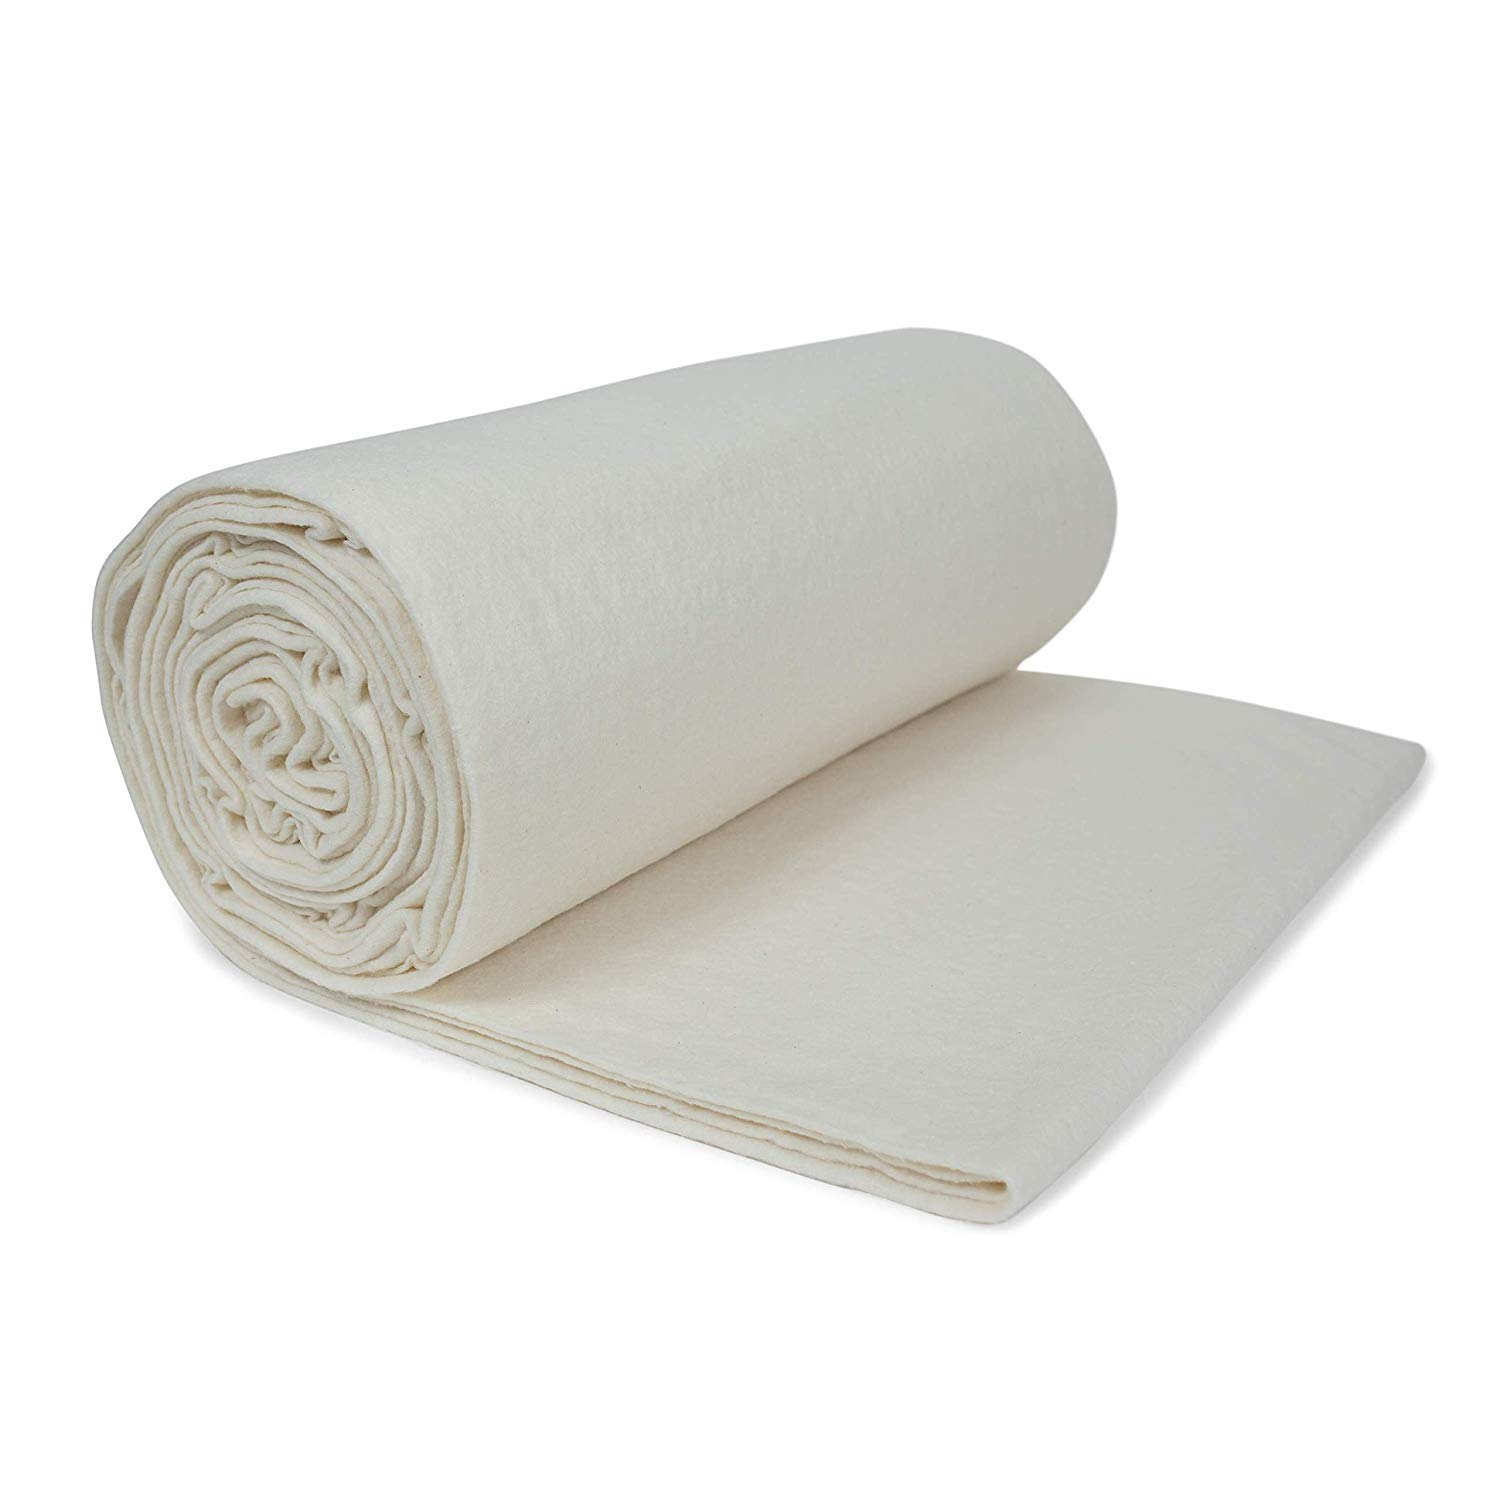 45-Inch 5 Yard Roll Low Soft Fairfield SNTY4505 Soft and Toasty Natural 100-Percent Cotton Batting